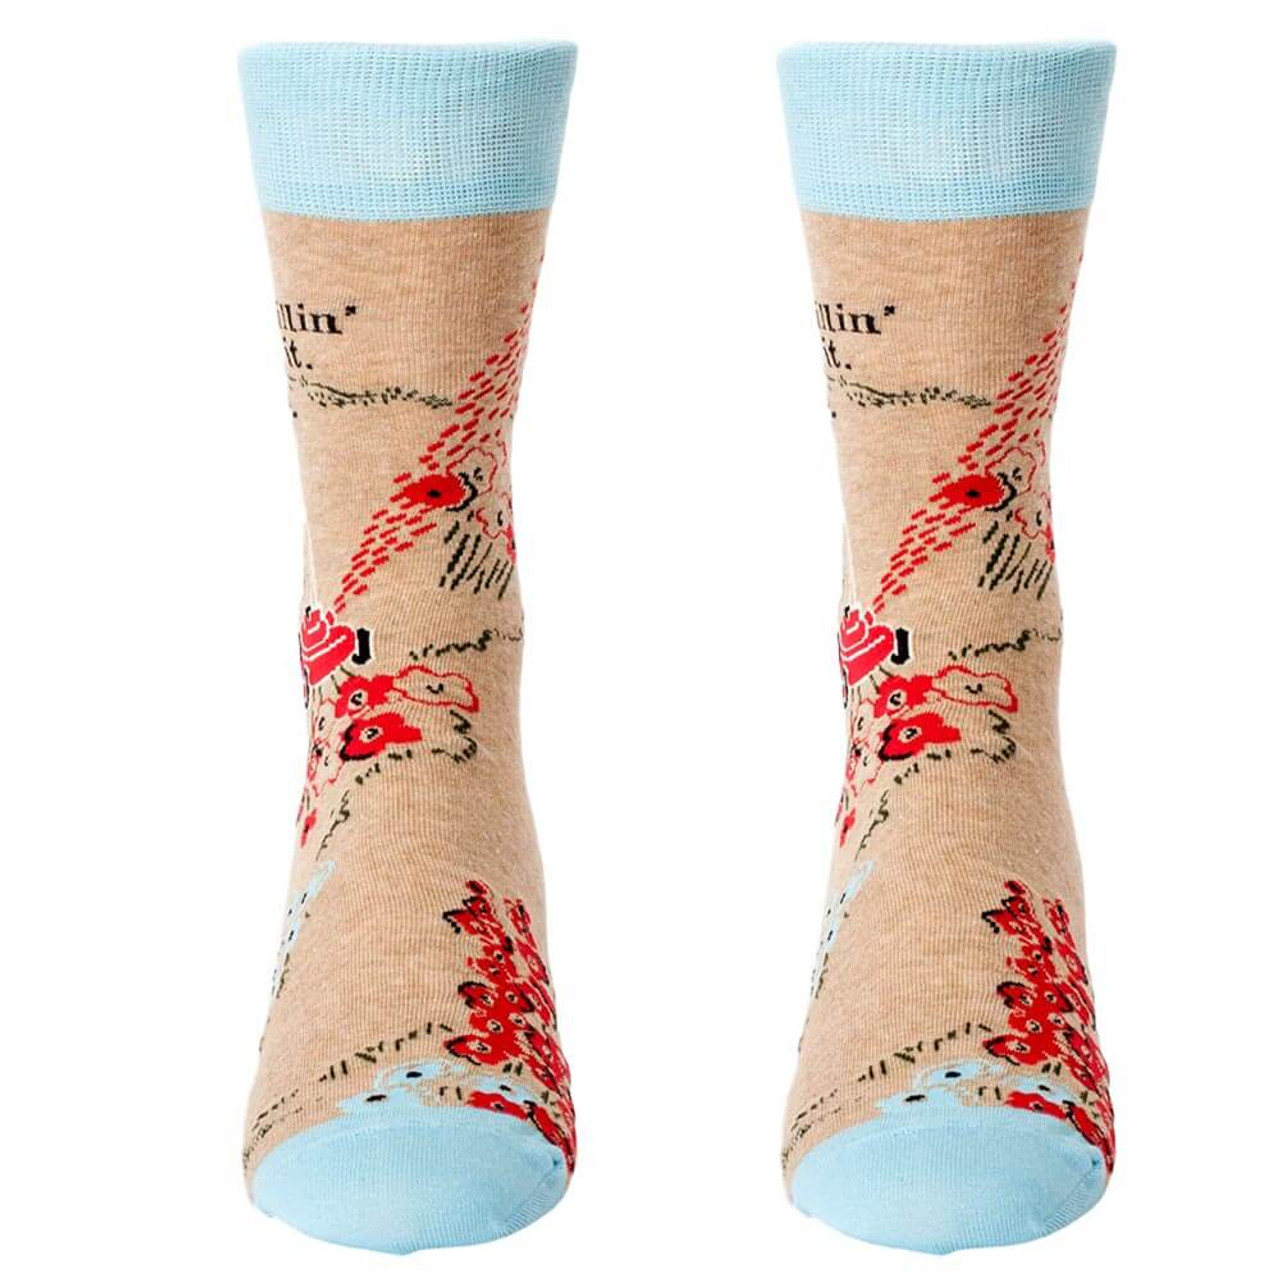 Killin' It Men's Blue Q Socks